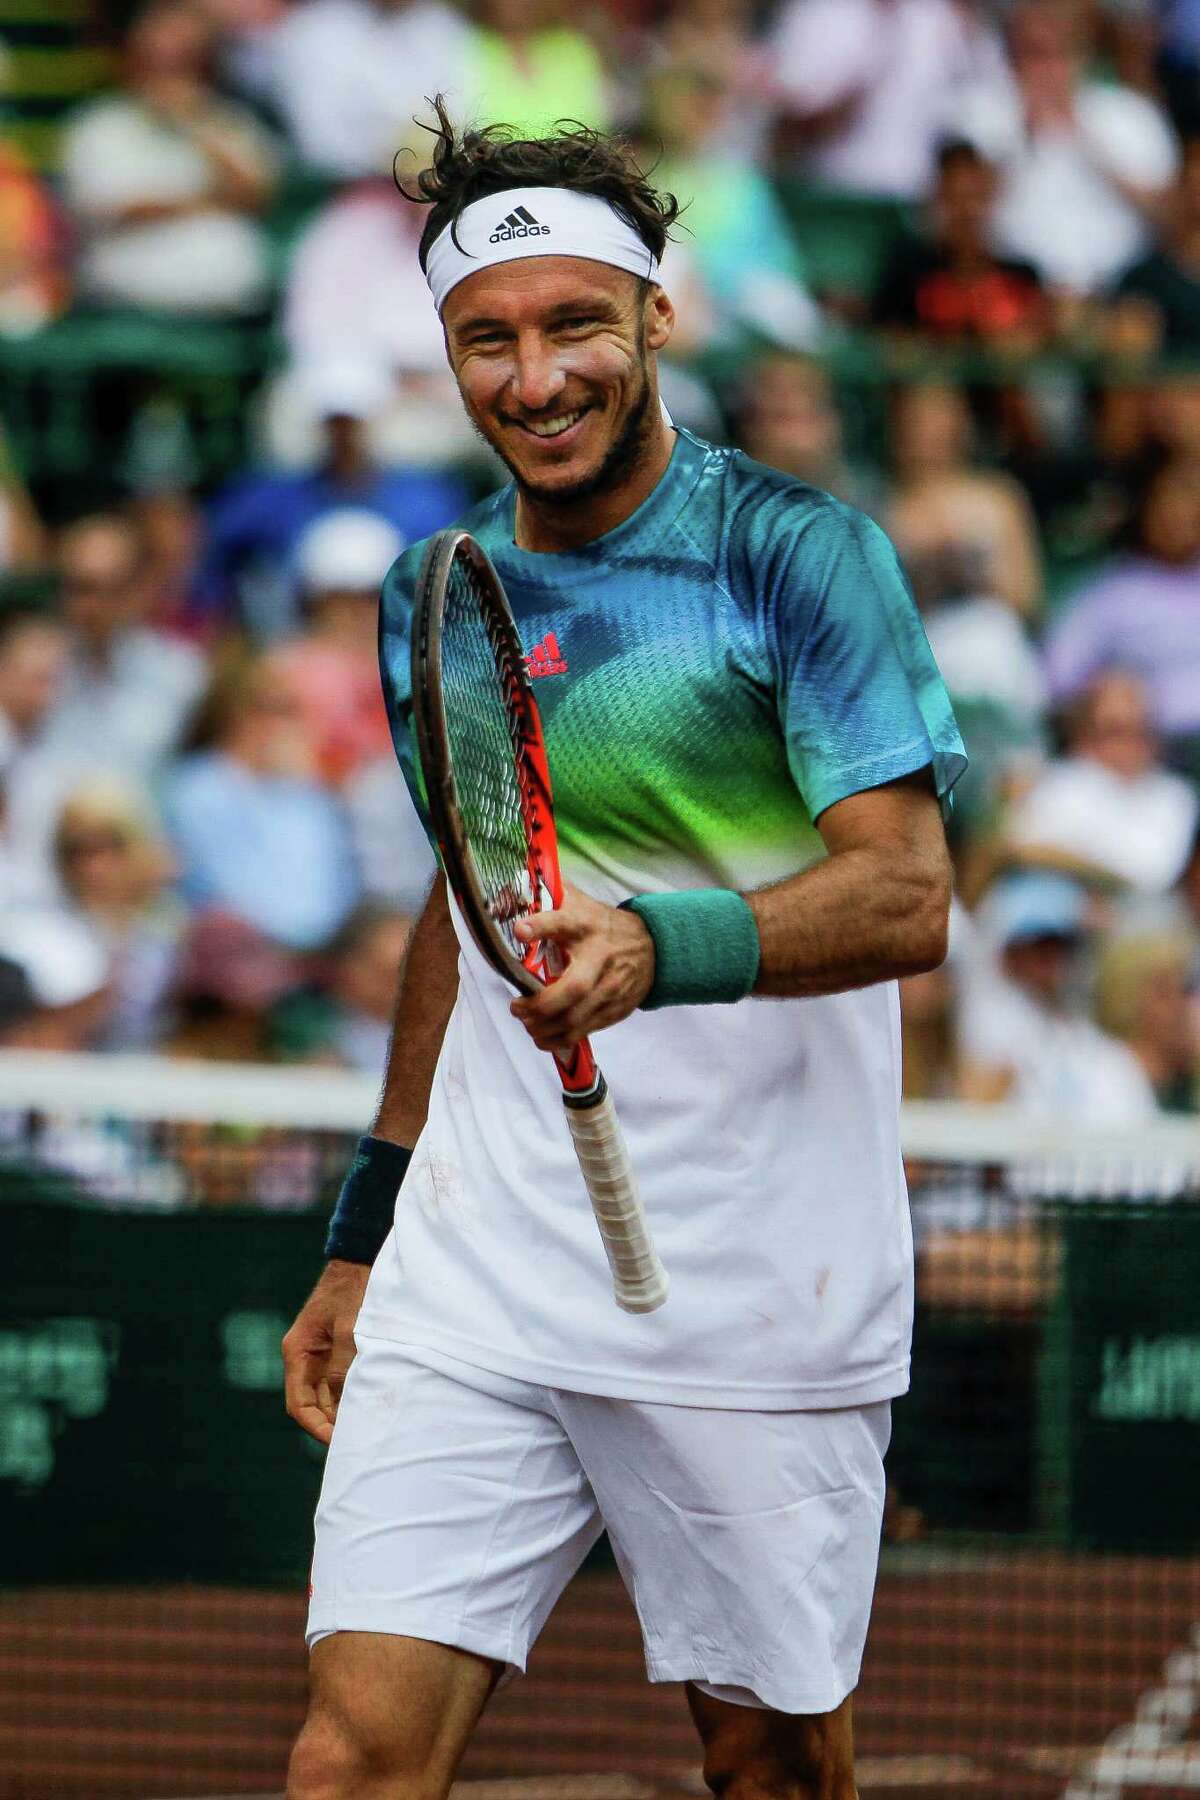 While Juan Monaco, left, was fired up at winning his second title in Houston, Jack Sock wasn't up to the task of repeating in the event as he struggled through a variety of physical ailments.